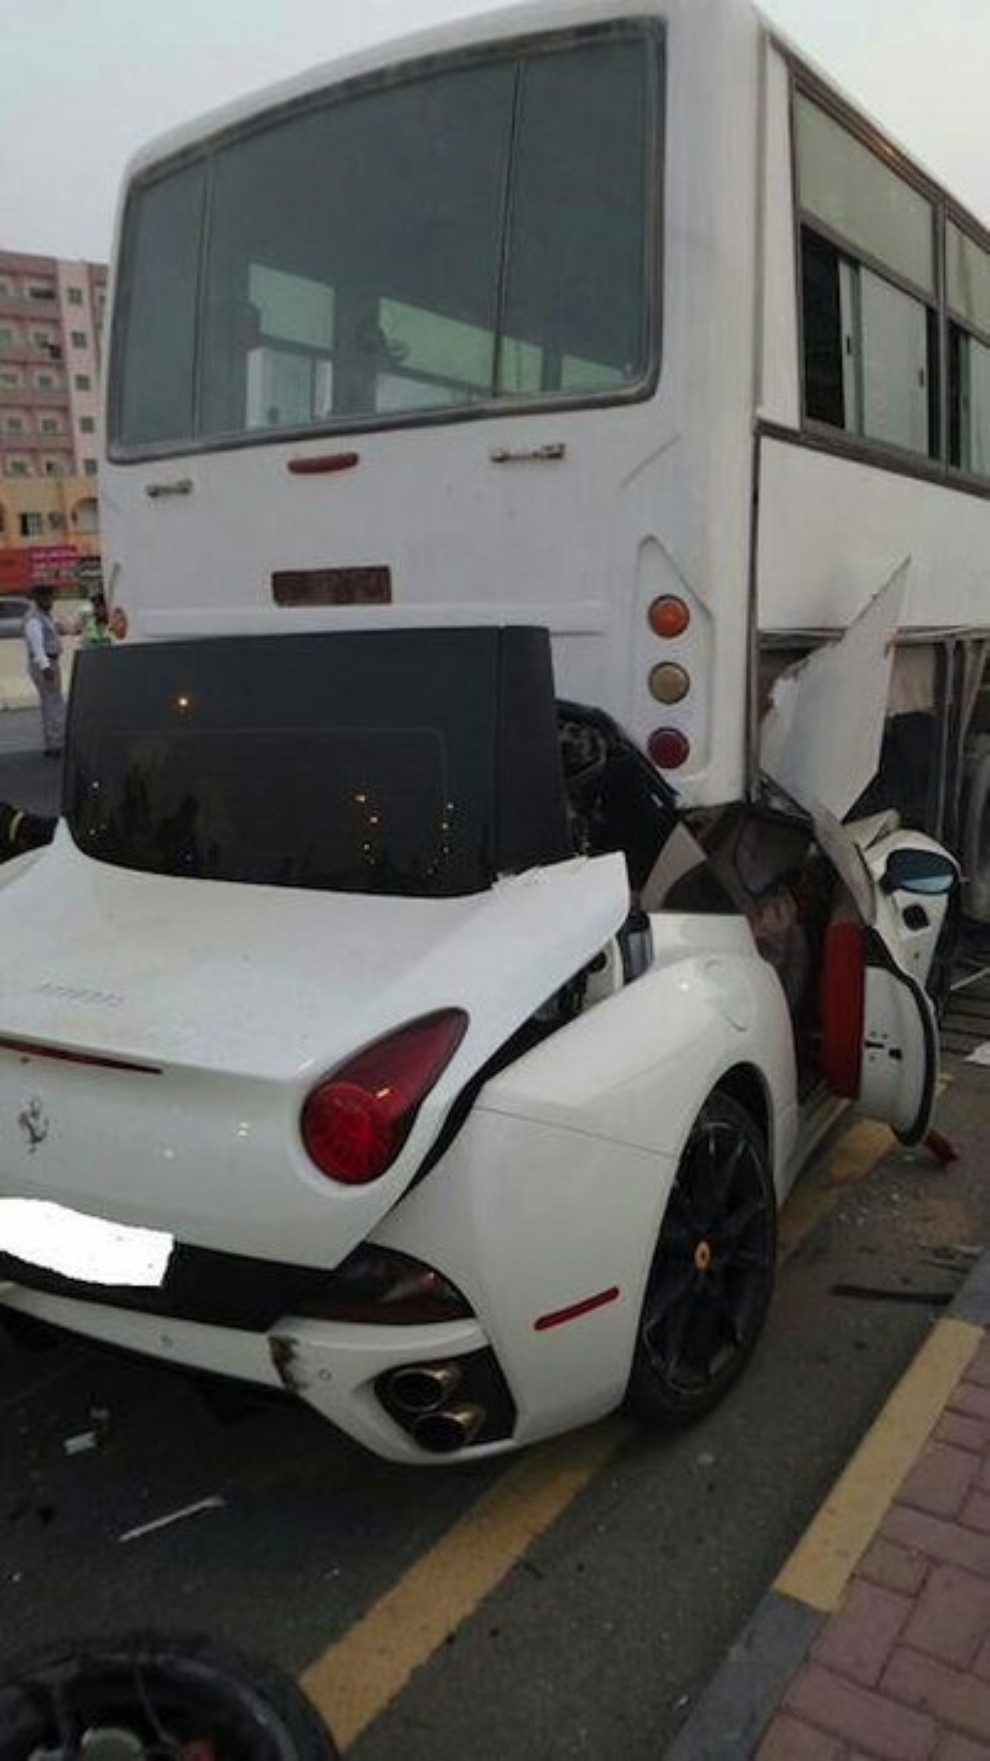 Ferrari California, spaventoso incidente contro un bus - Foto 3 di 3